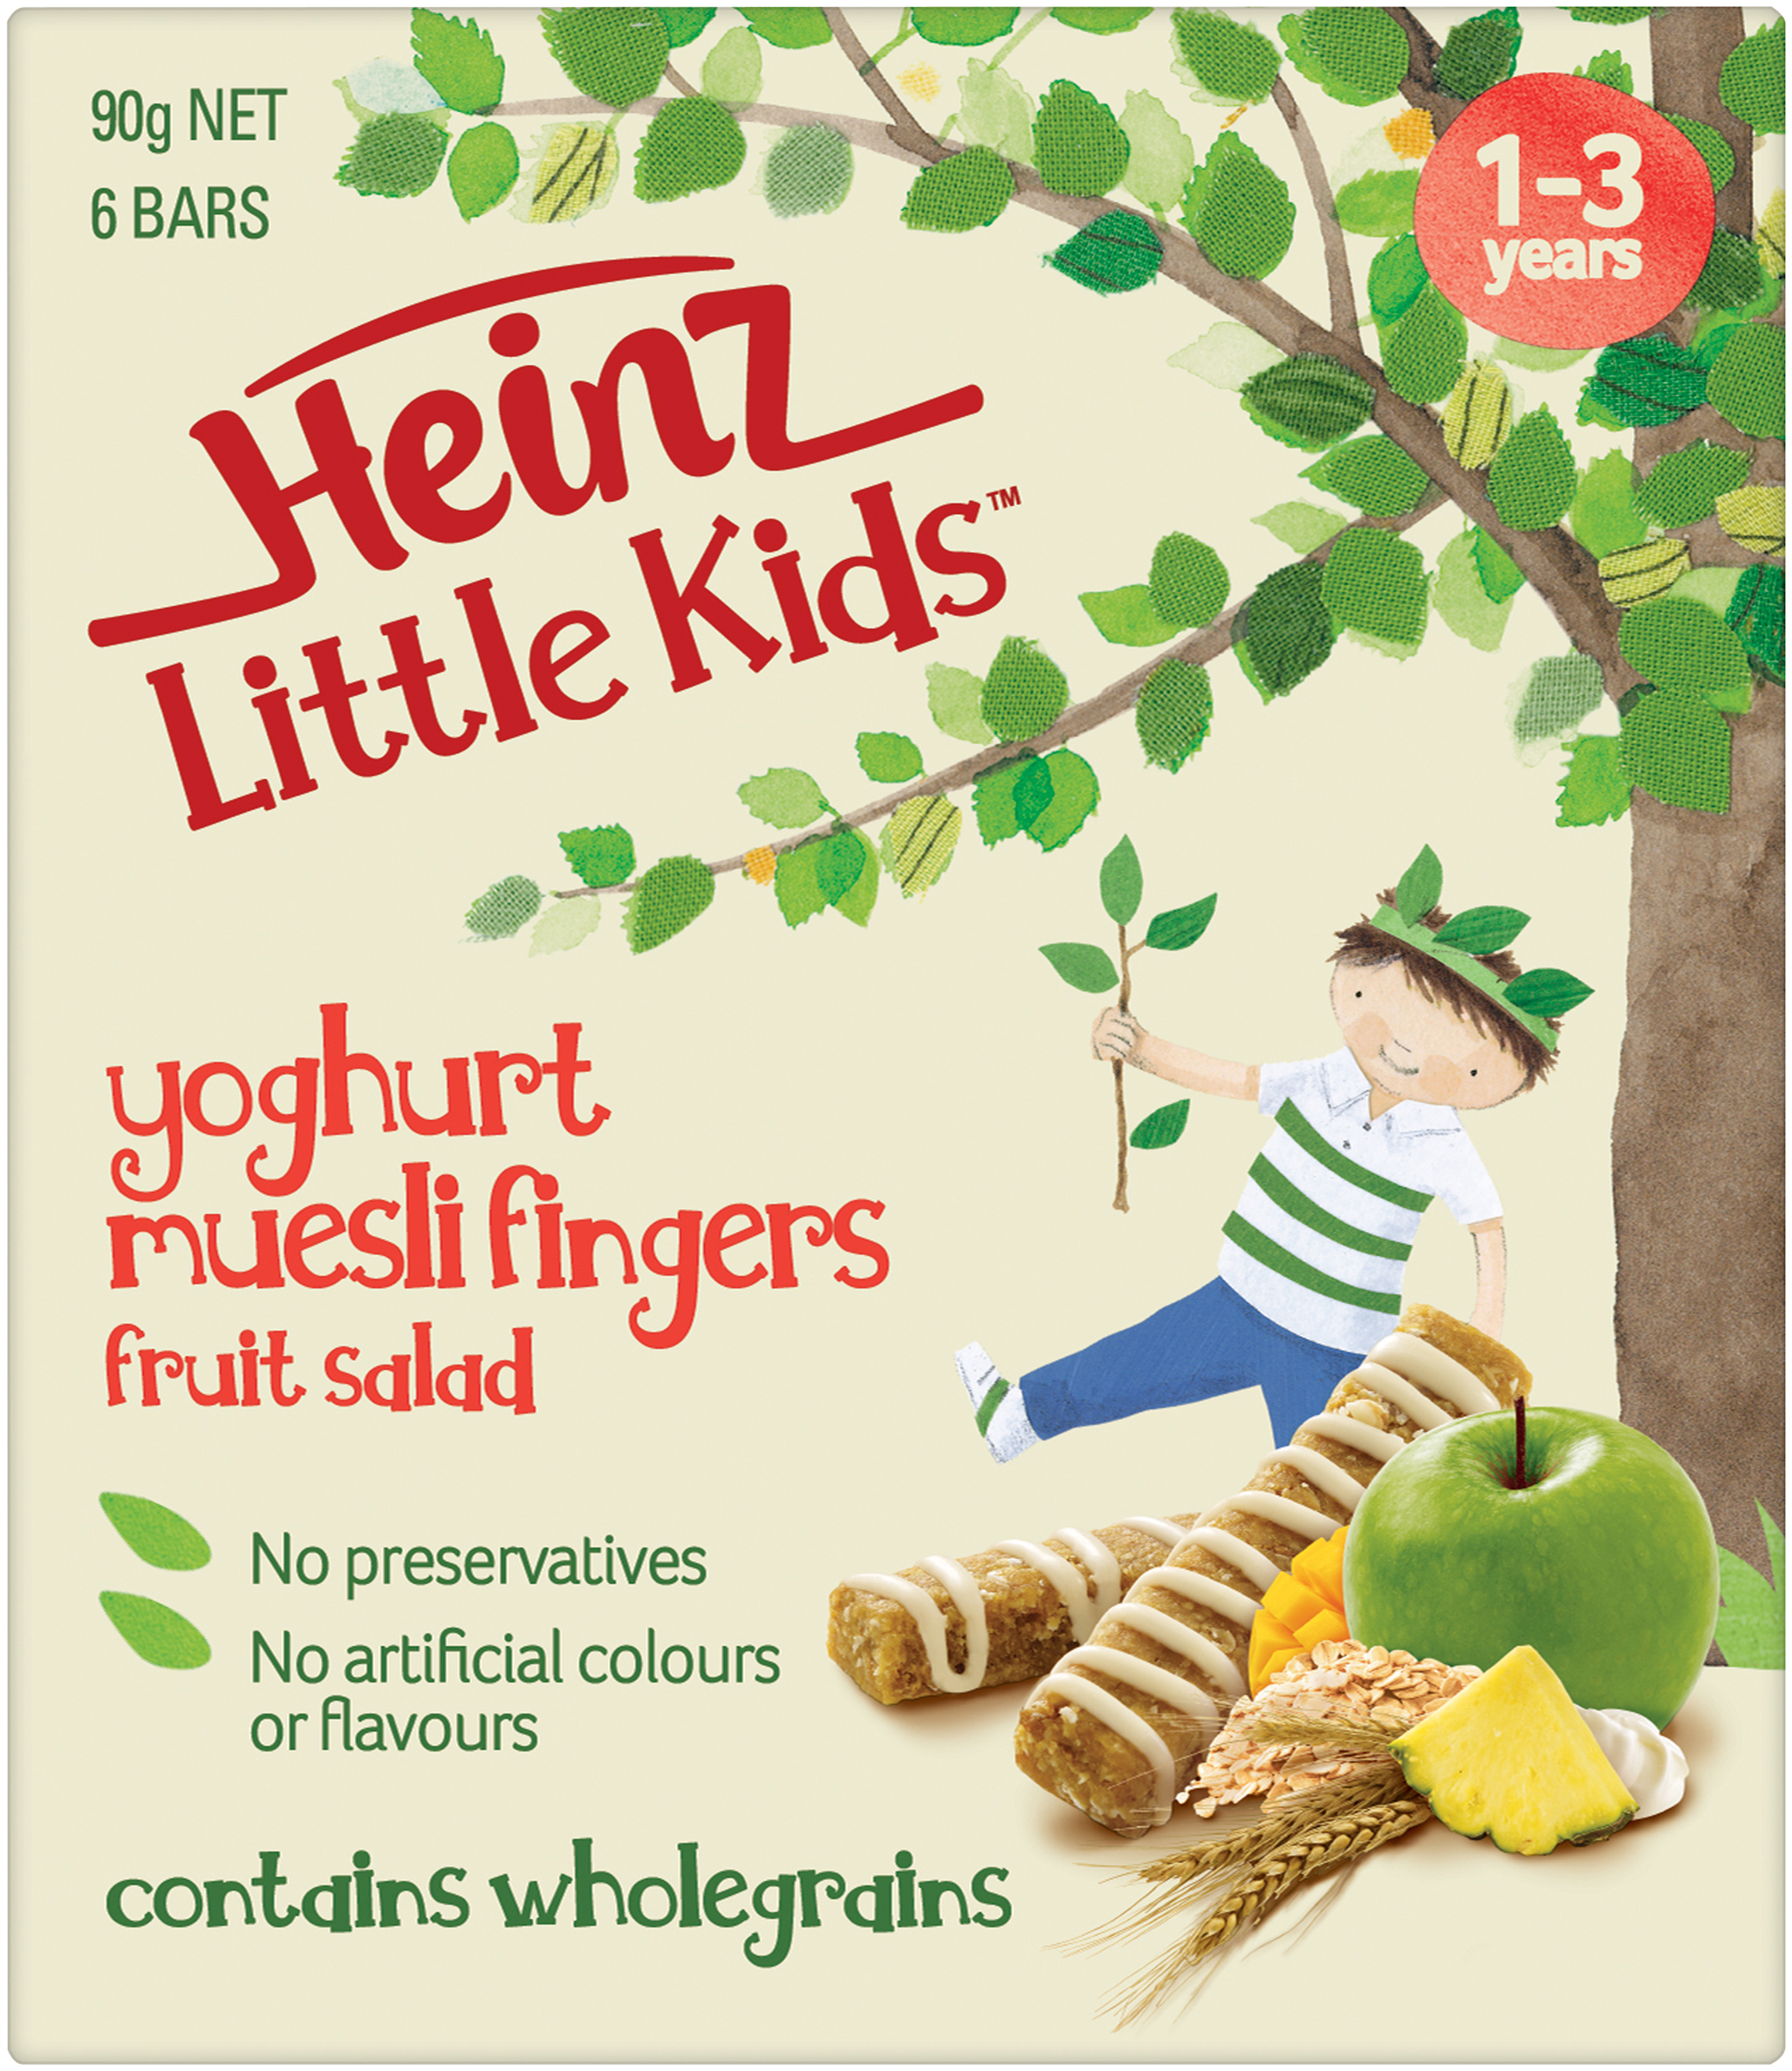 heinz-little-kids-fruit-salad-yoghurt-muesli-fingers